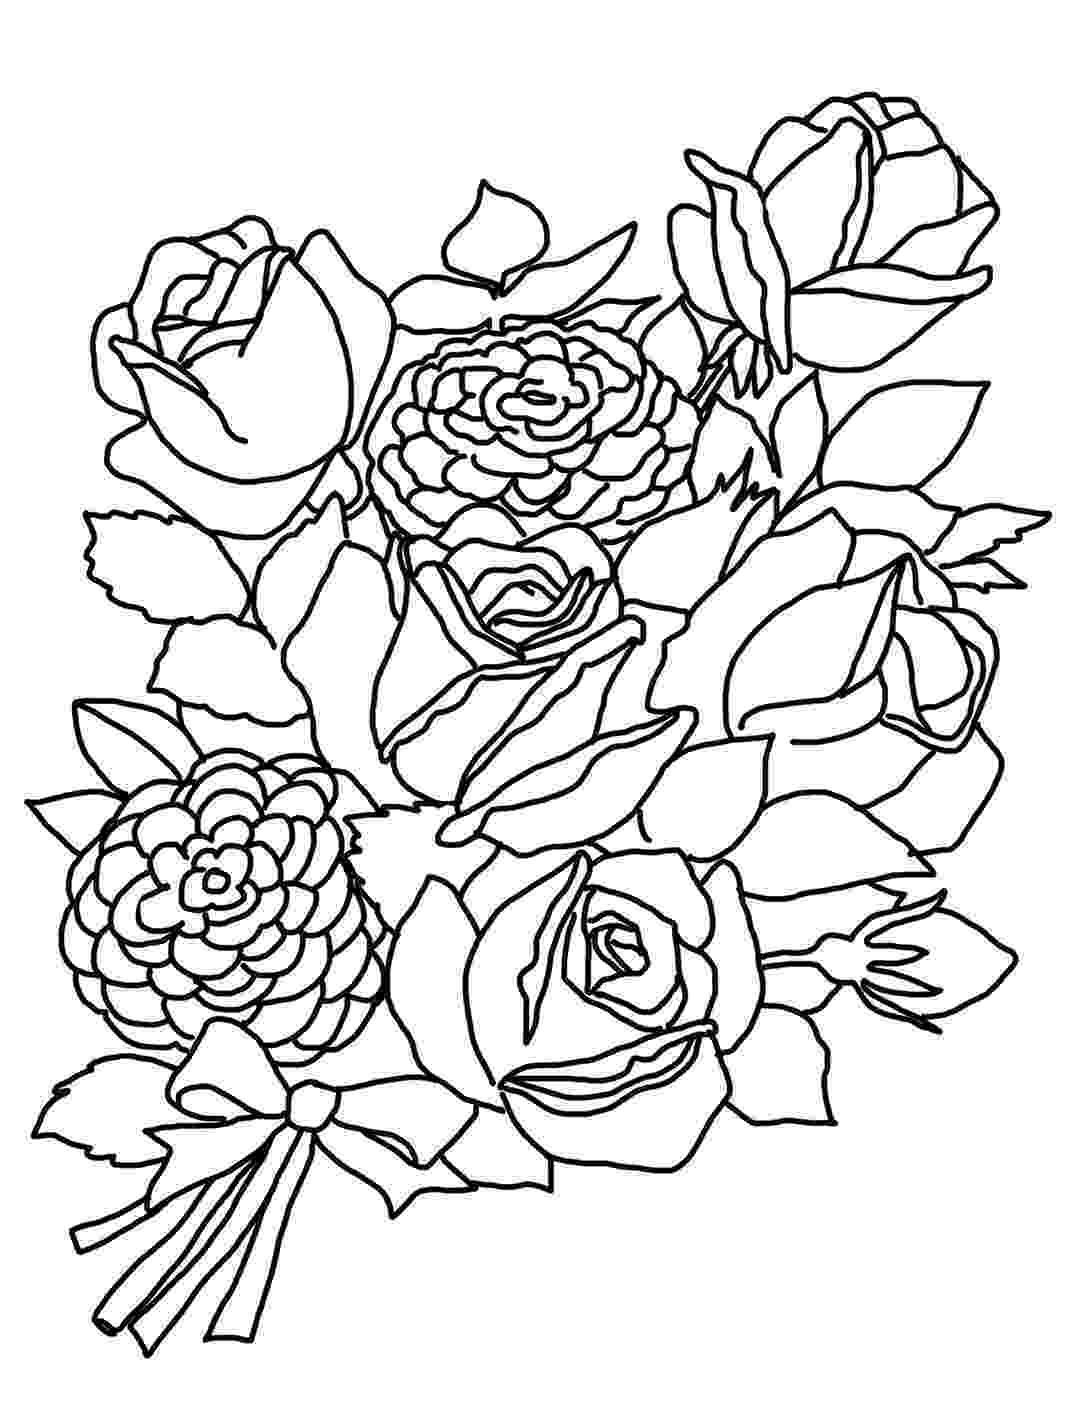 coloring roses free printable flower coloring pages for kids best coloring roses